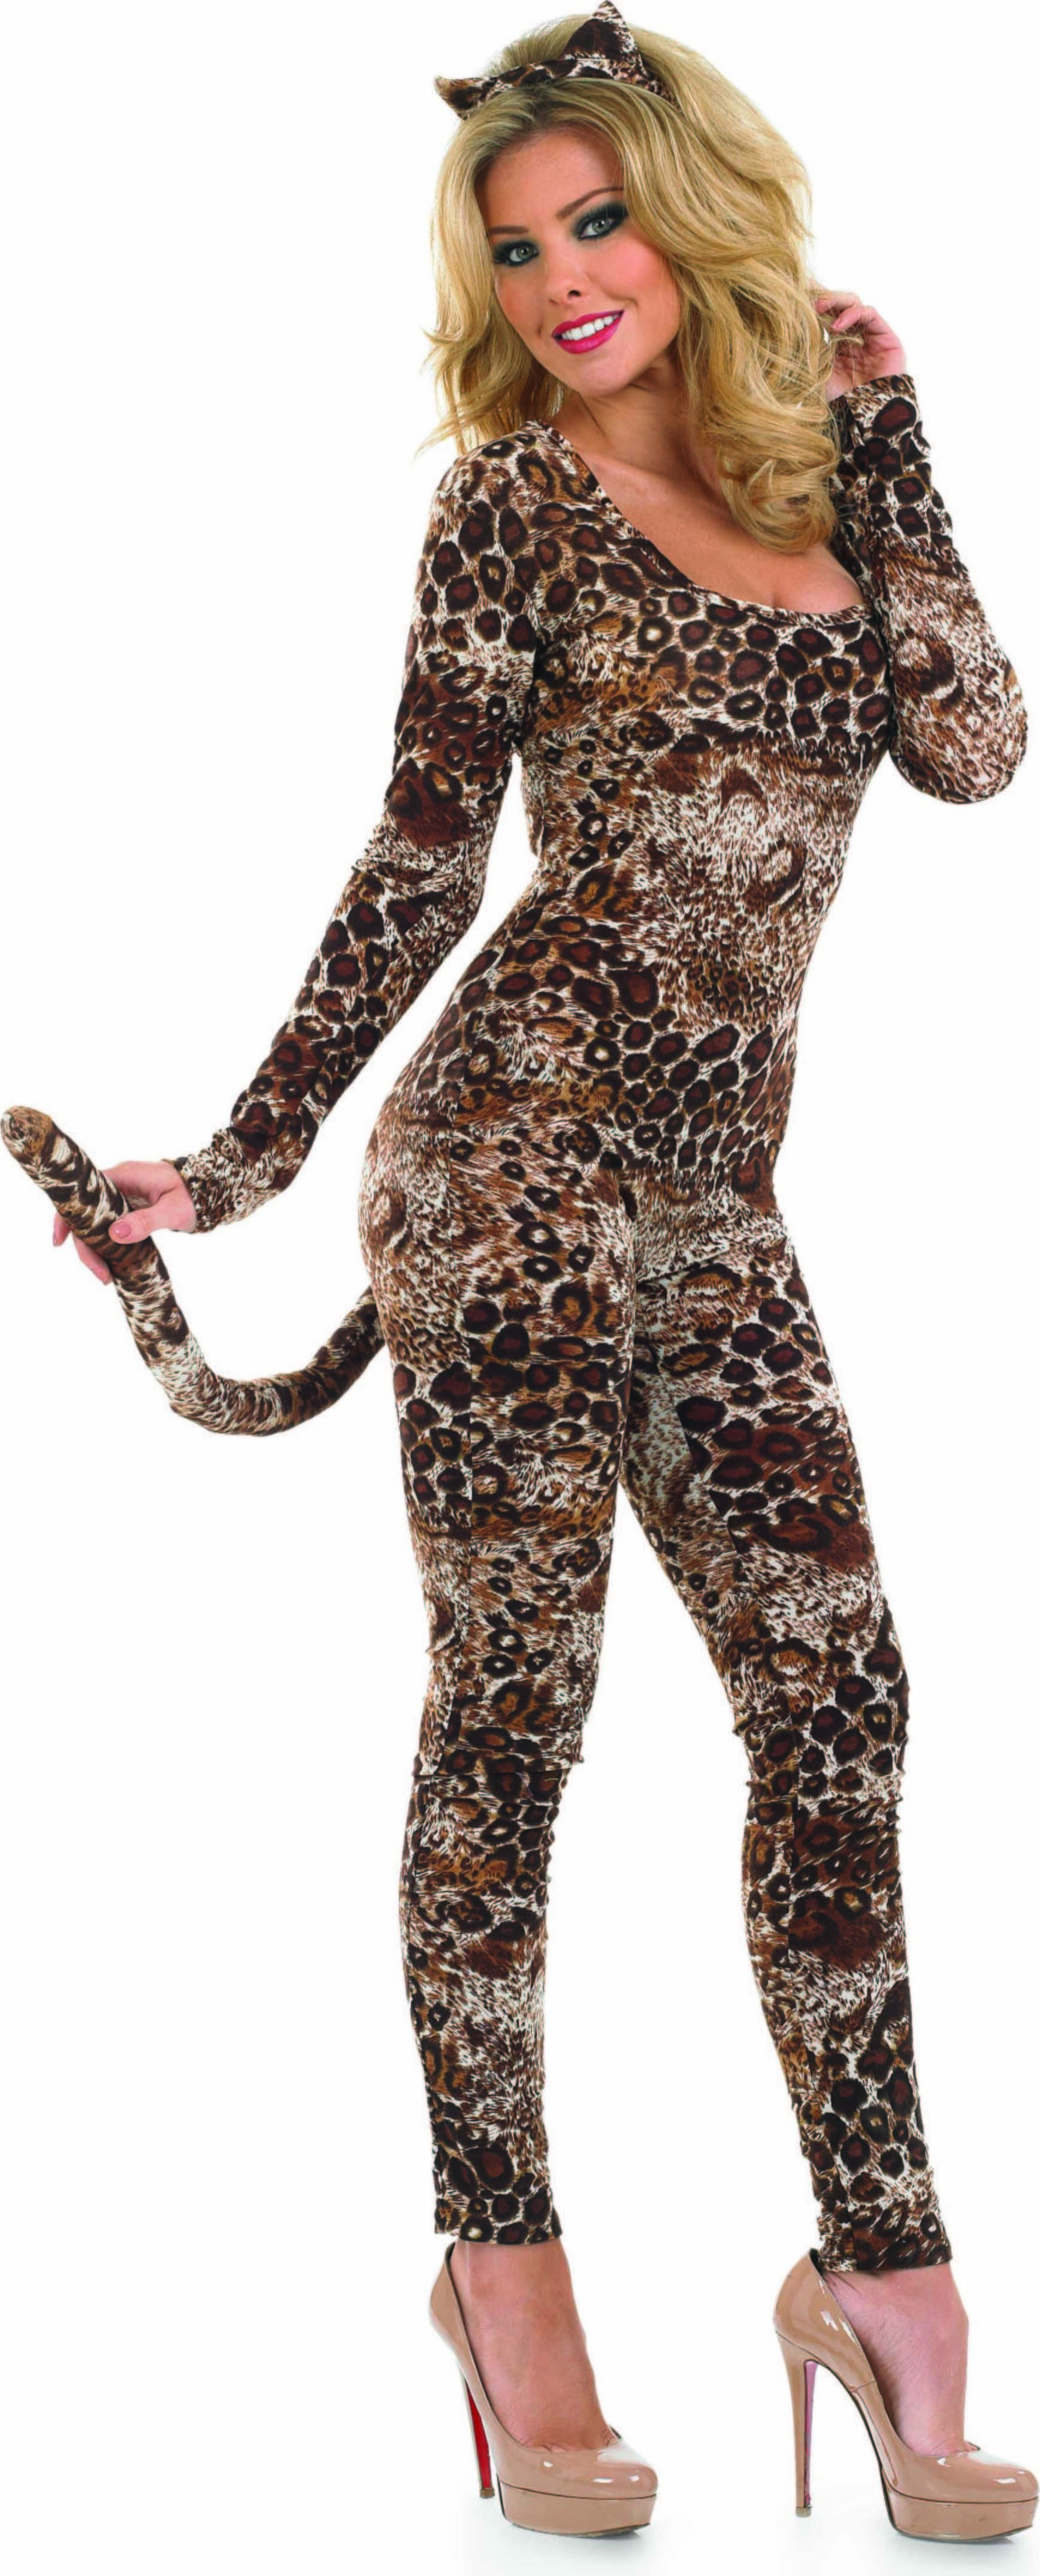 Ladies Cougar Catsuit Animal Outfit - (Brown)